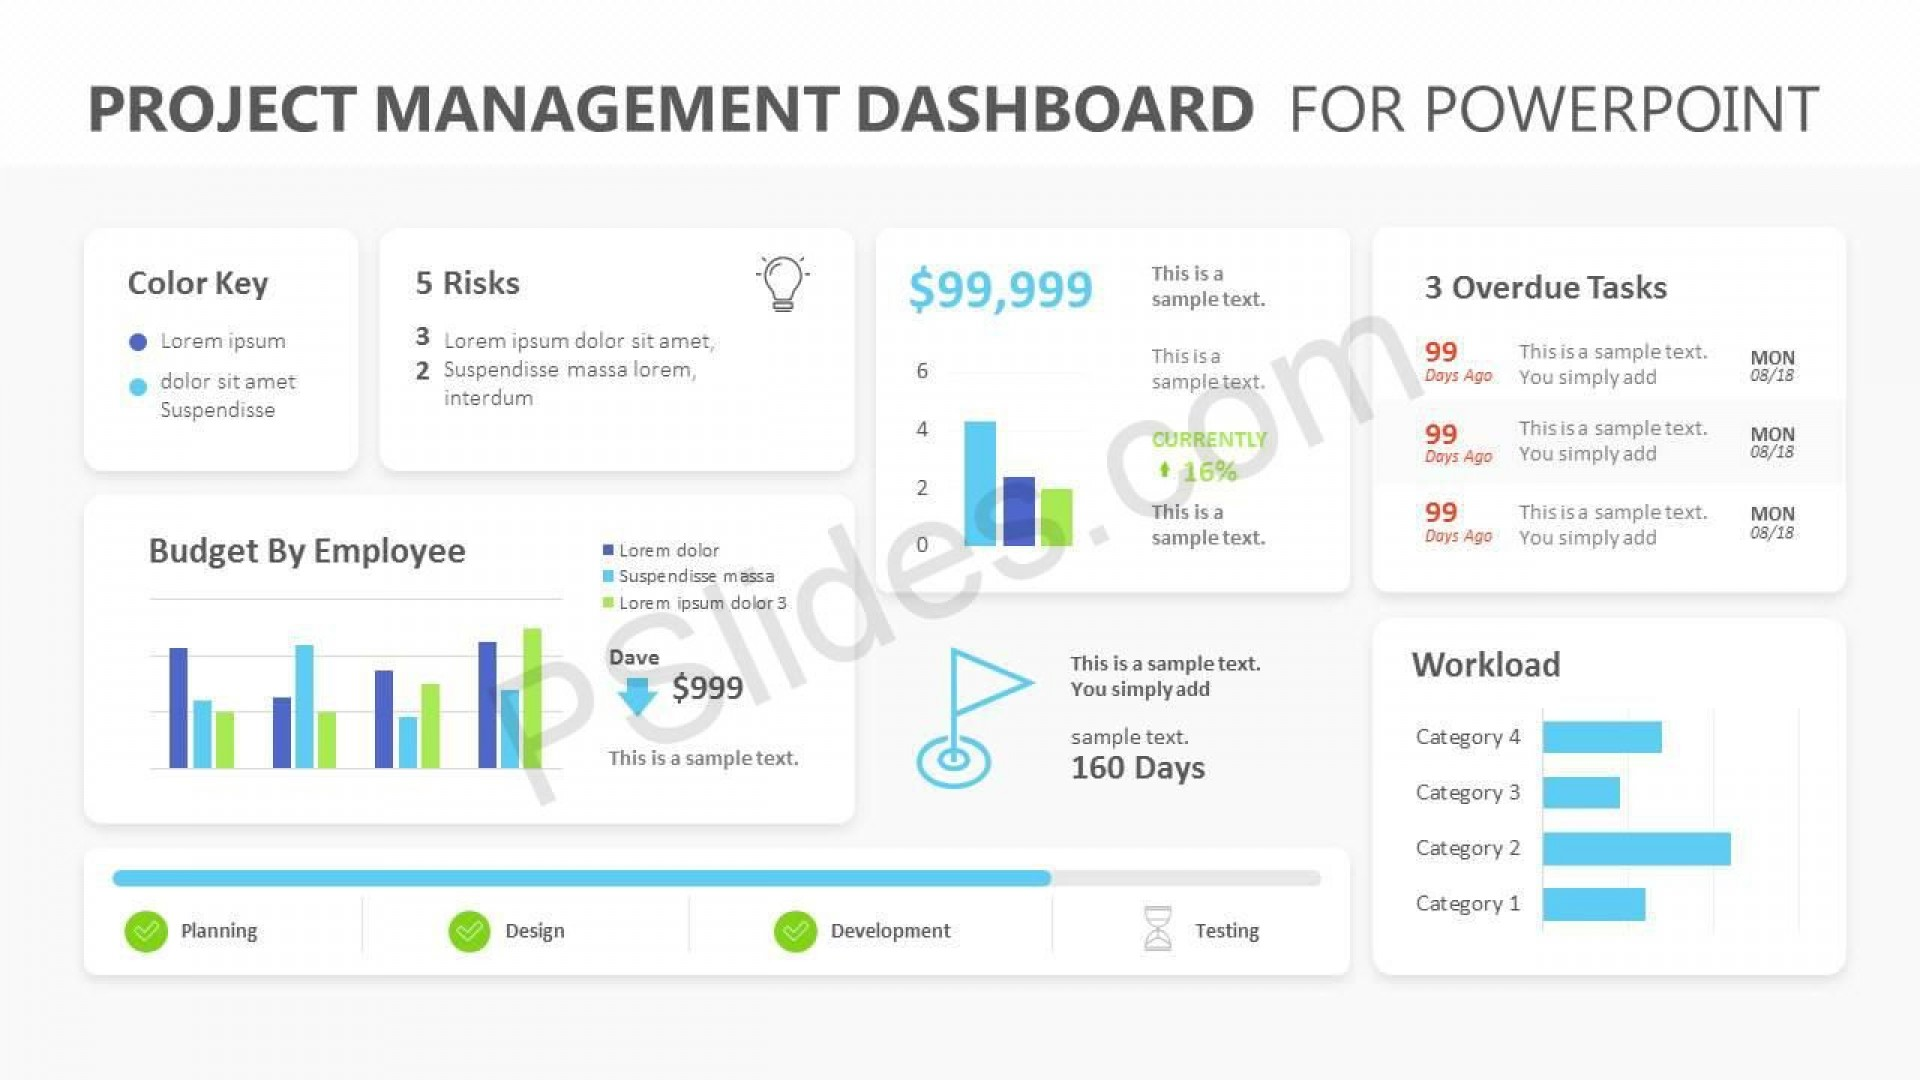 006 Shocking Project Management Ppt Template Free Download High Def  Sqert Powerpoint Dashboard1920